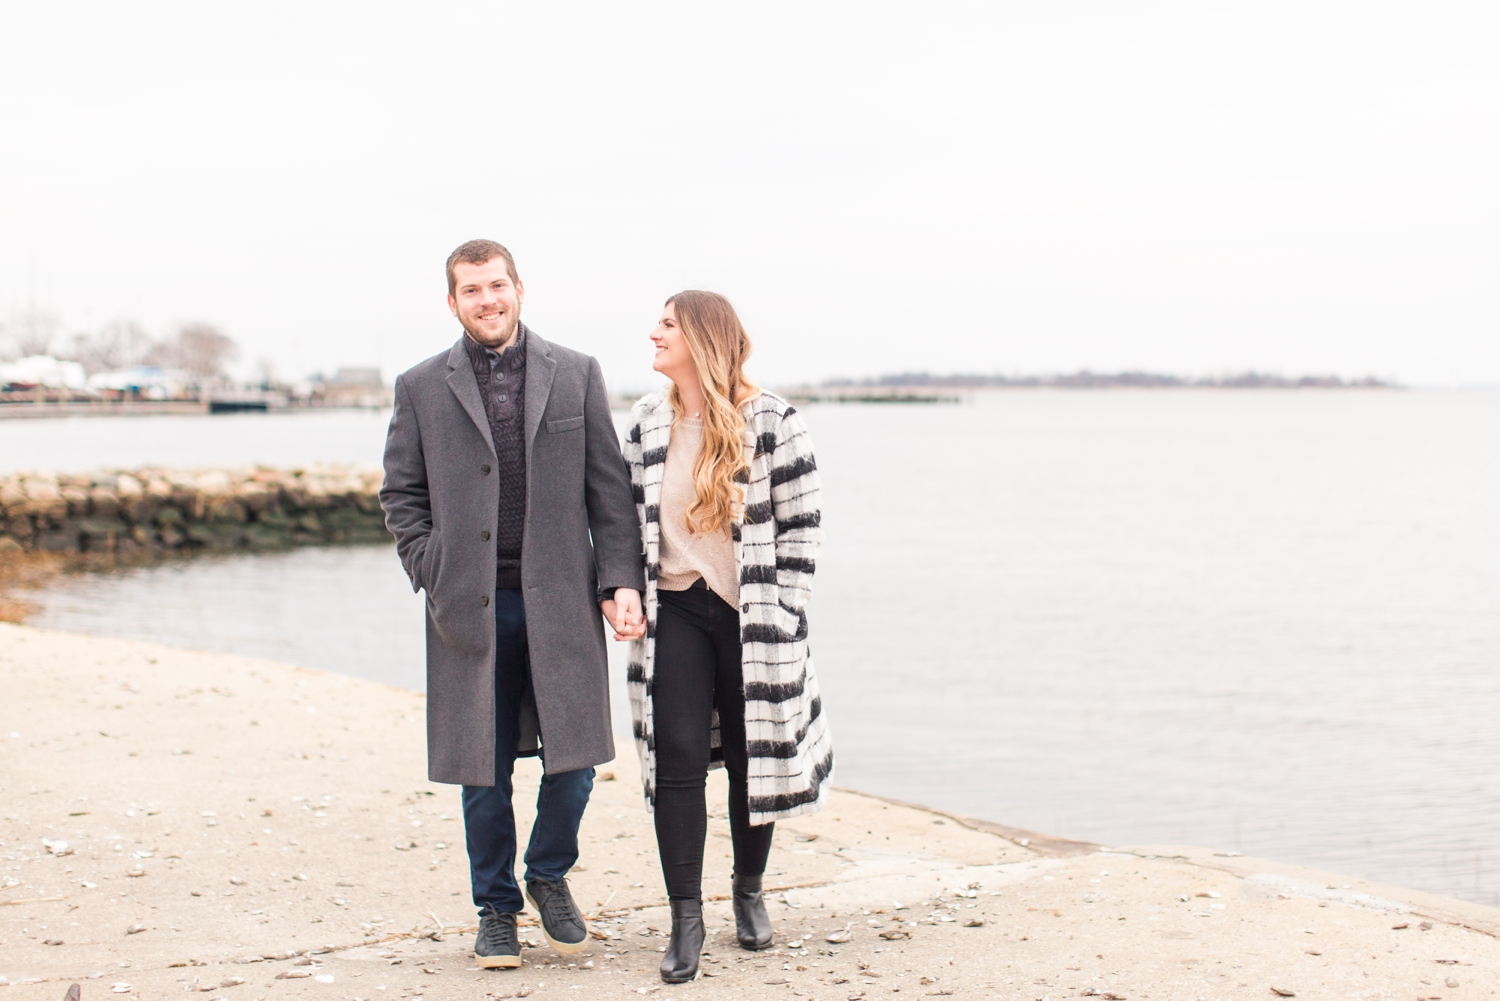 the-shore-and-country-club-engagement-session-norwalk-connecticut-wedding-photographer-shaina-lee-photography-photo